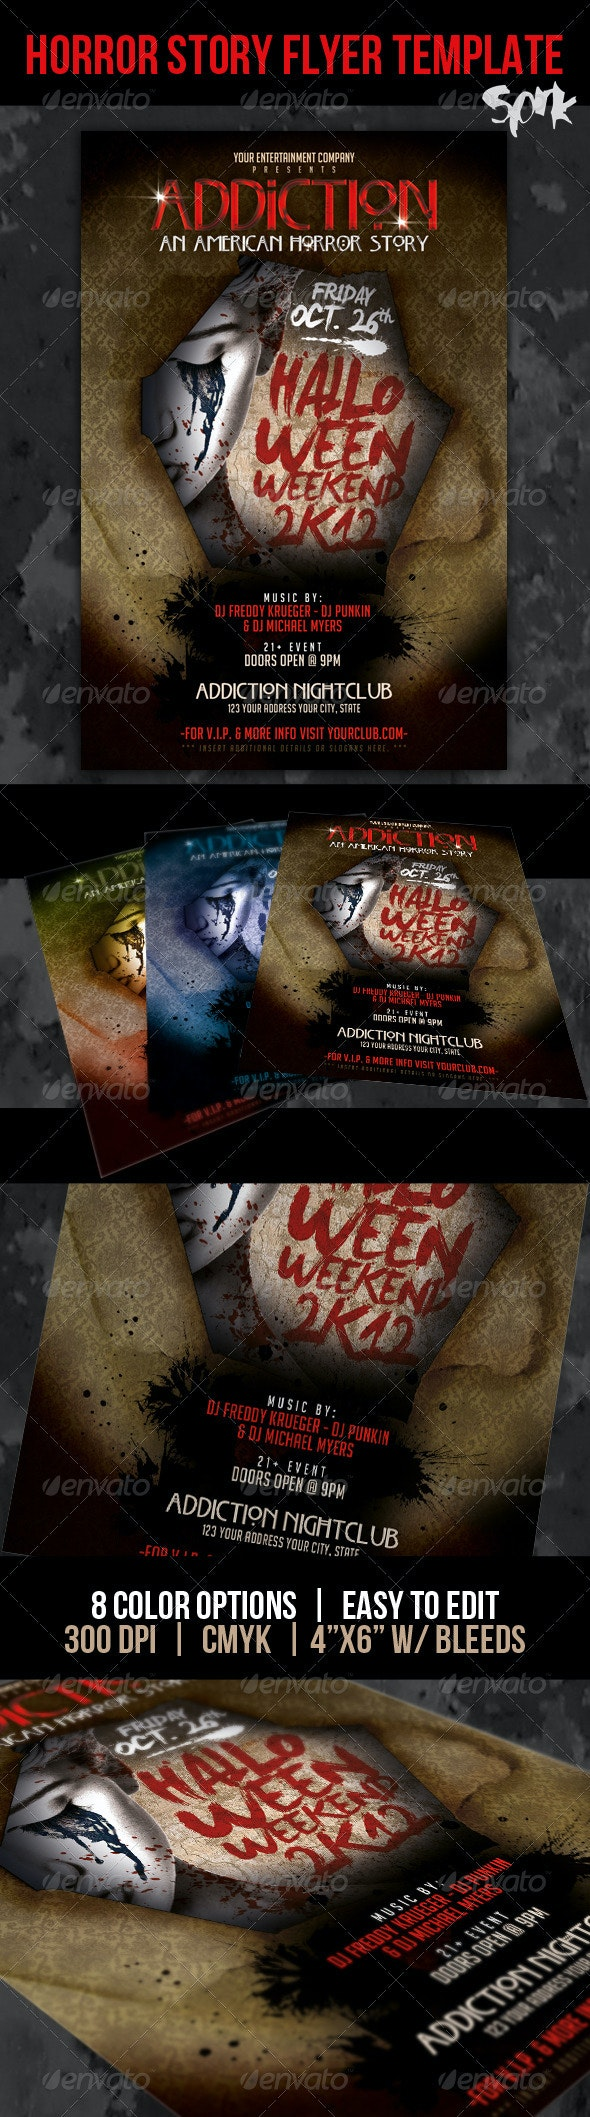 A Horror Story Halloween Party Flyer Template - Clubs & Parties Events